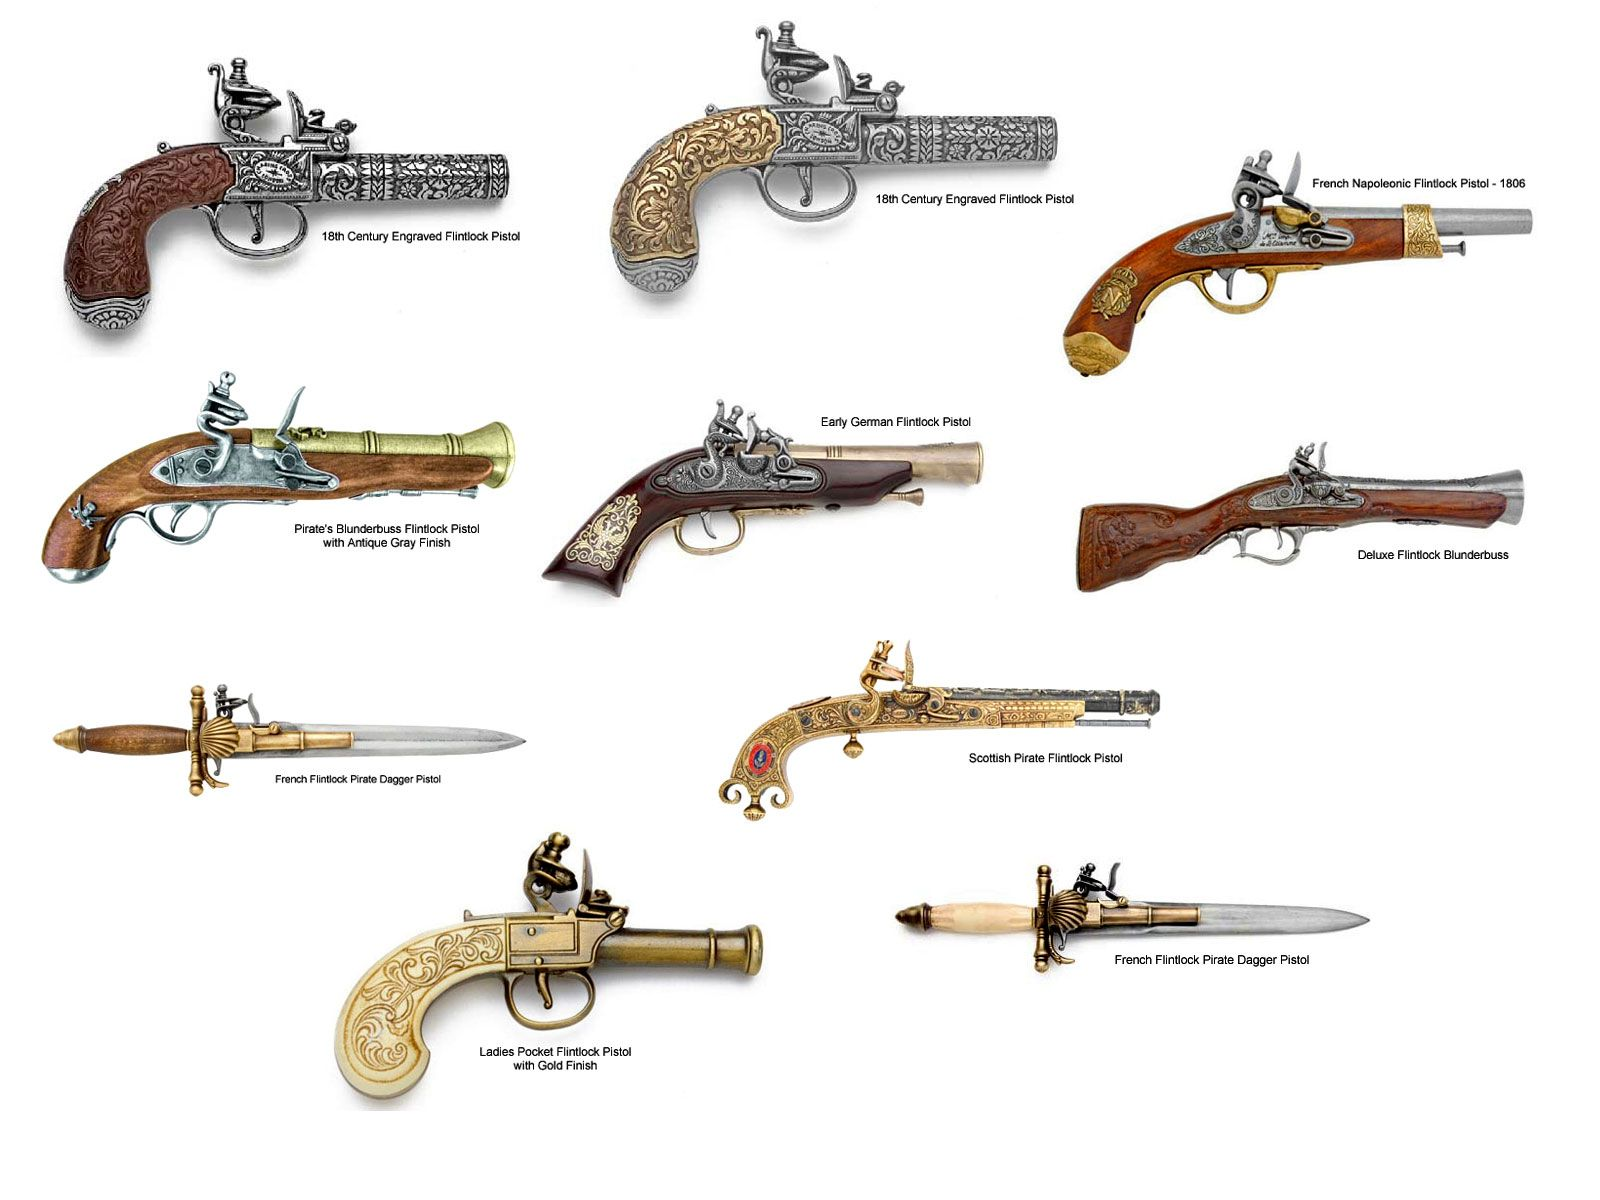 Beautiful examples of pirate weapons.